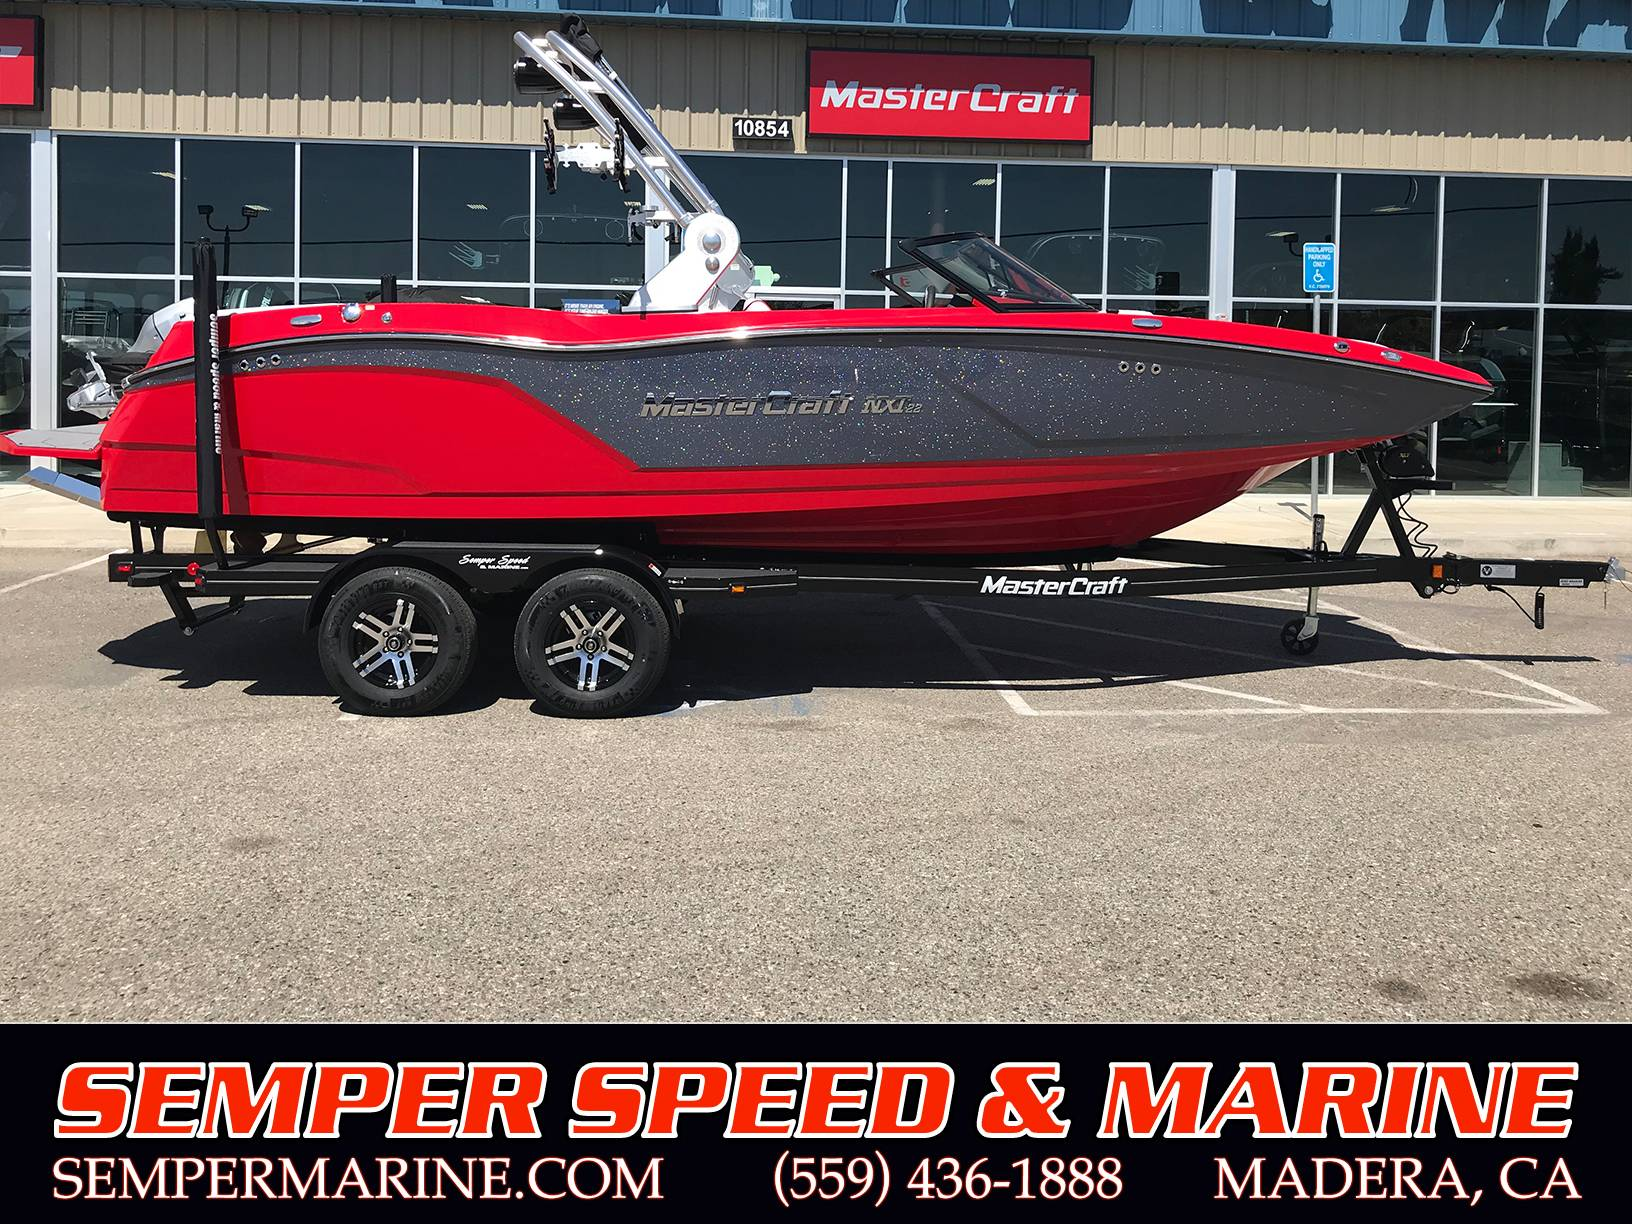 2019 Mastercraft NXT22 Red & Gunmetal Flake Power Boats